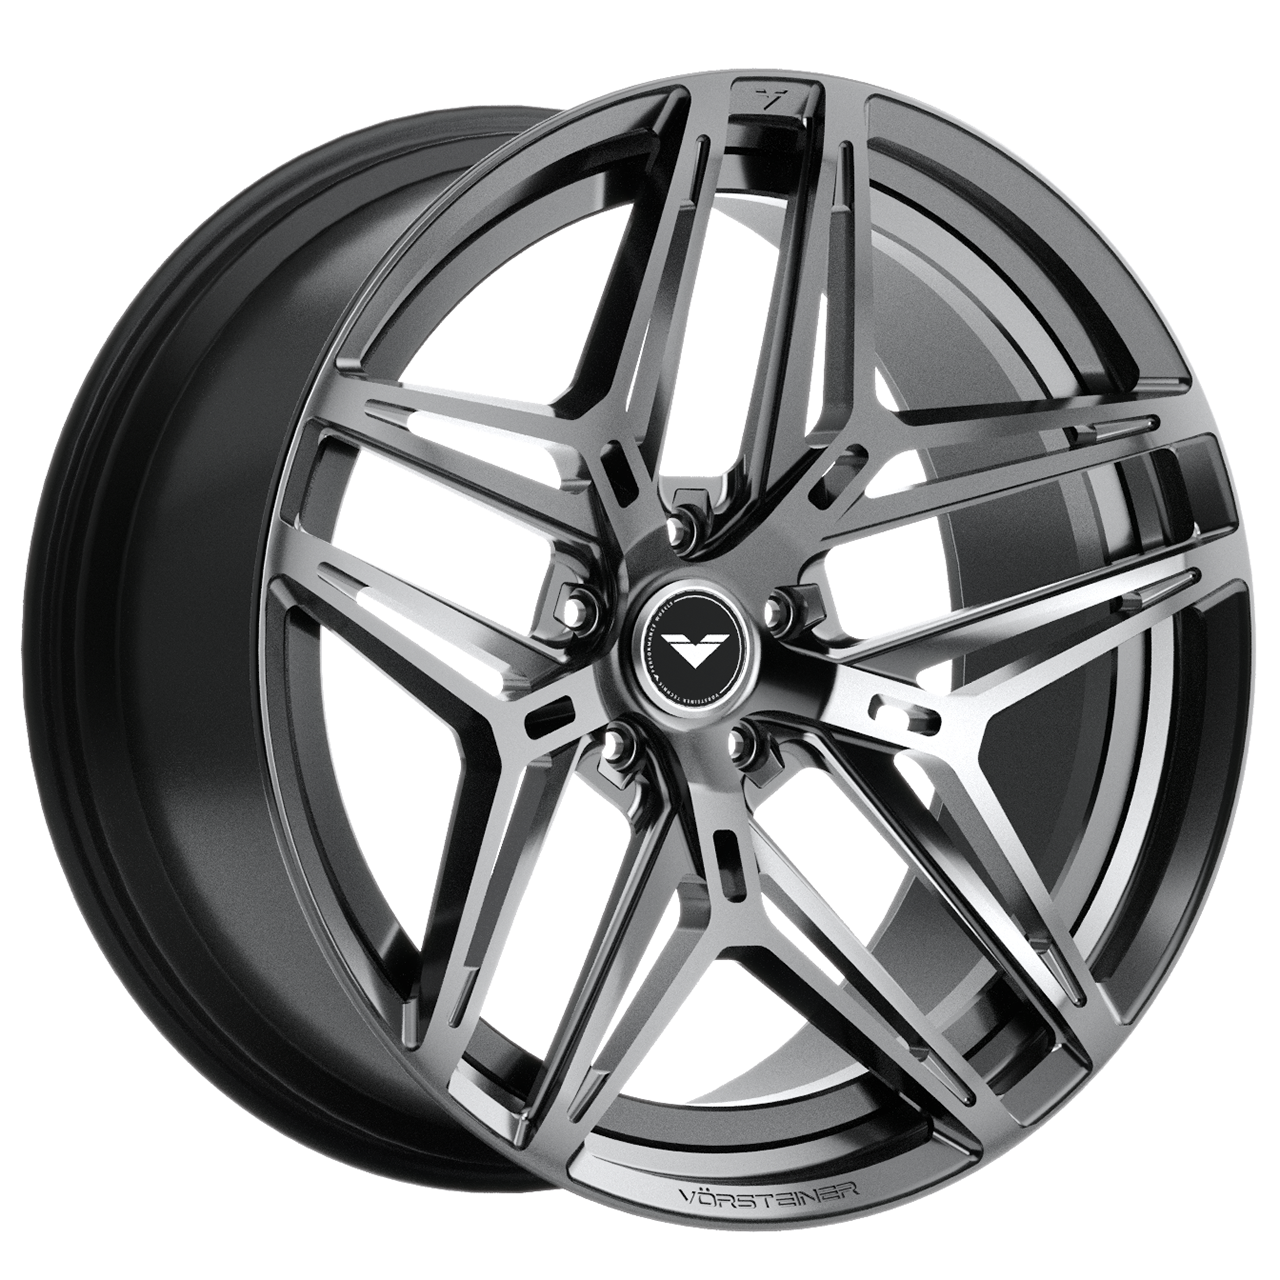 Vorsteiner Nero Forged VFN 518 (2-Piece Forged Series)